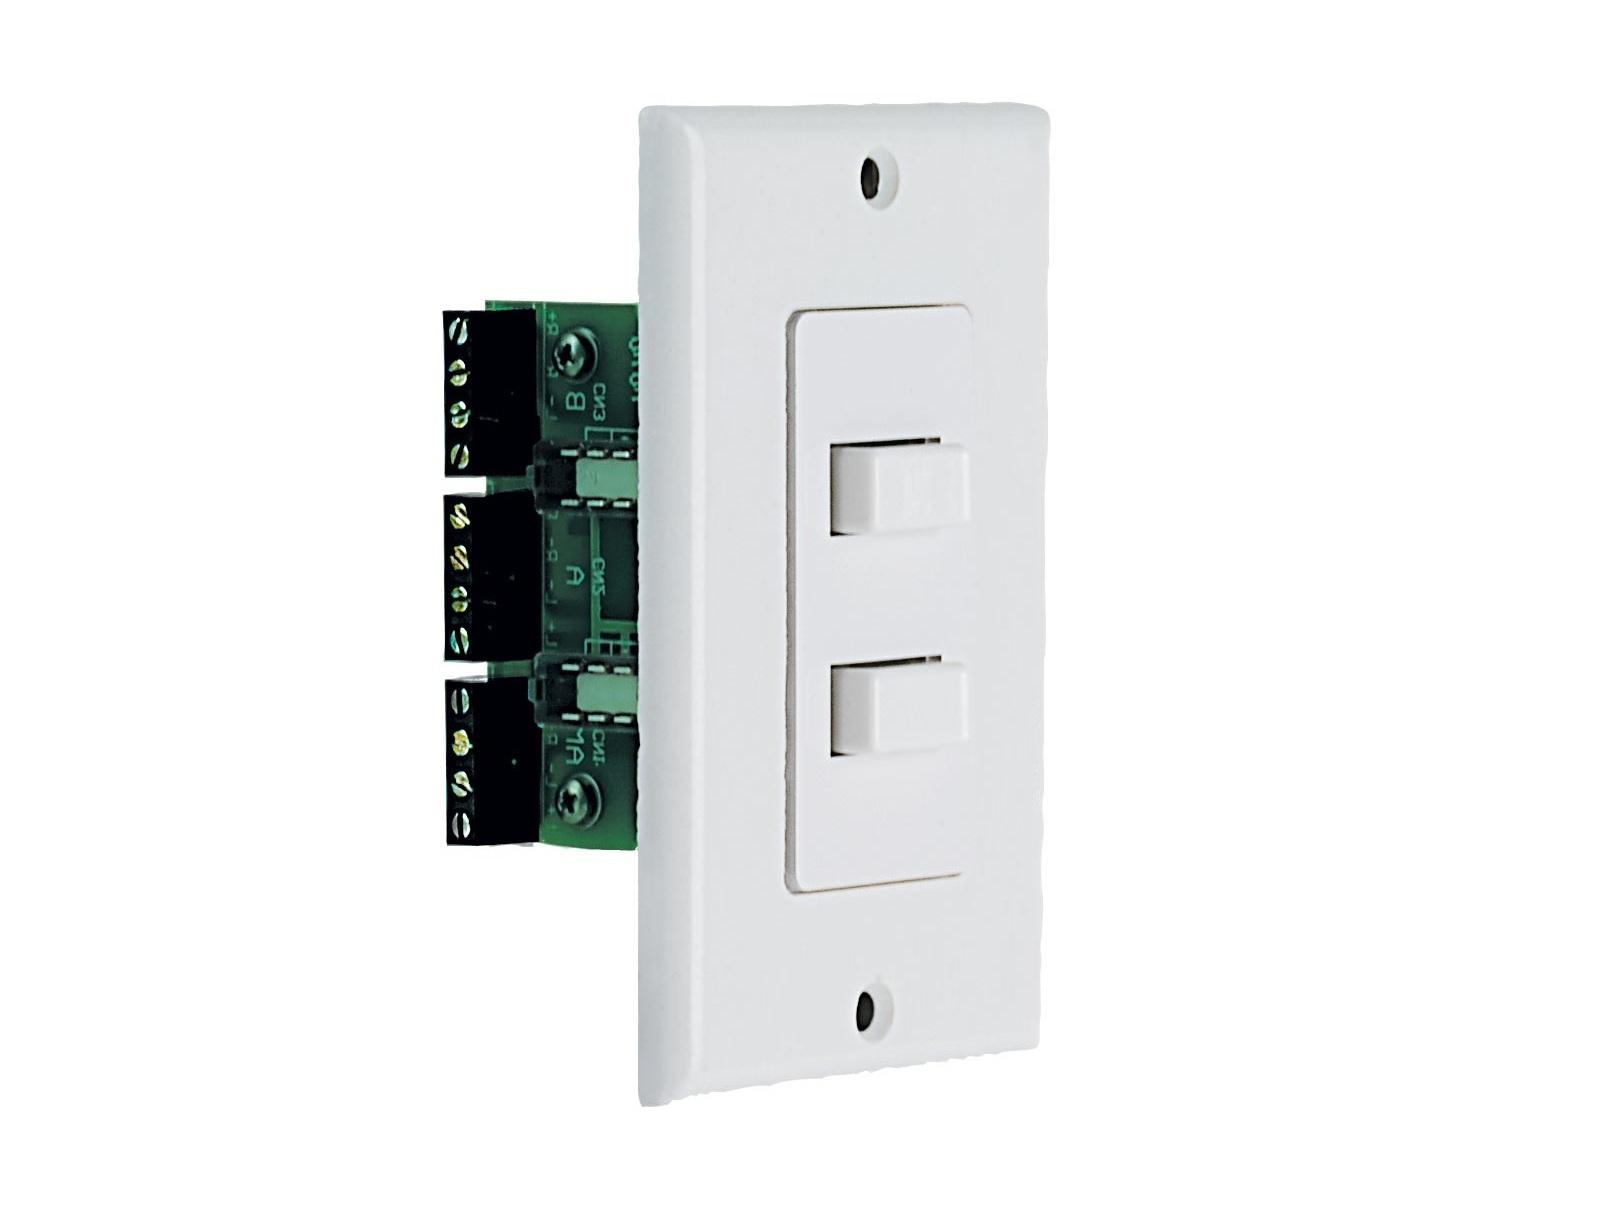 AB-2D Wall Mounted A/B or A B Selector for 2 Pair of Speakers (White) by Niles